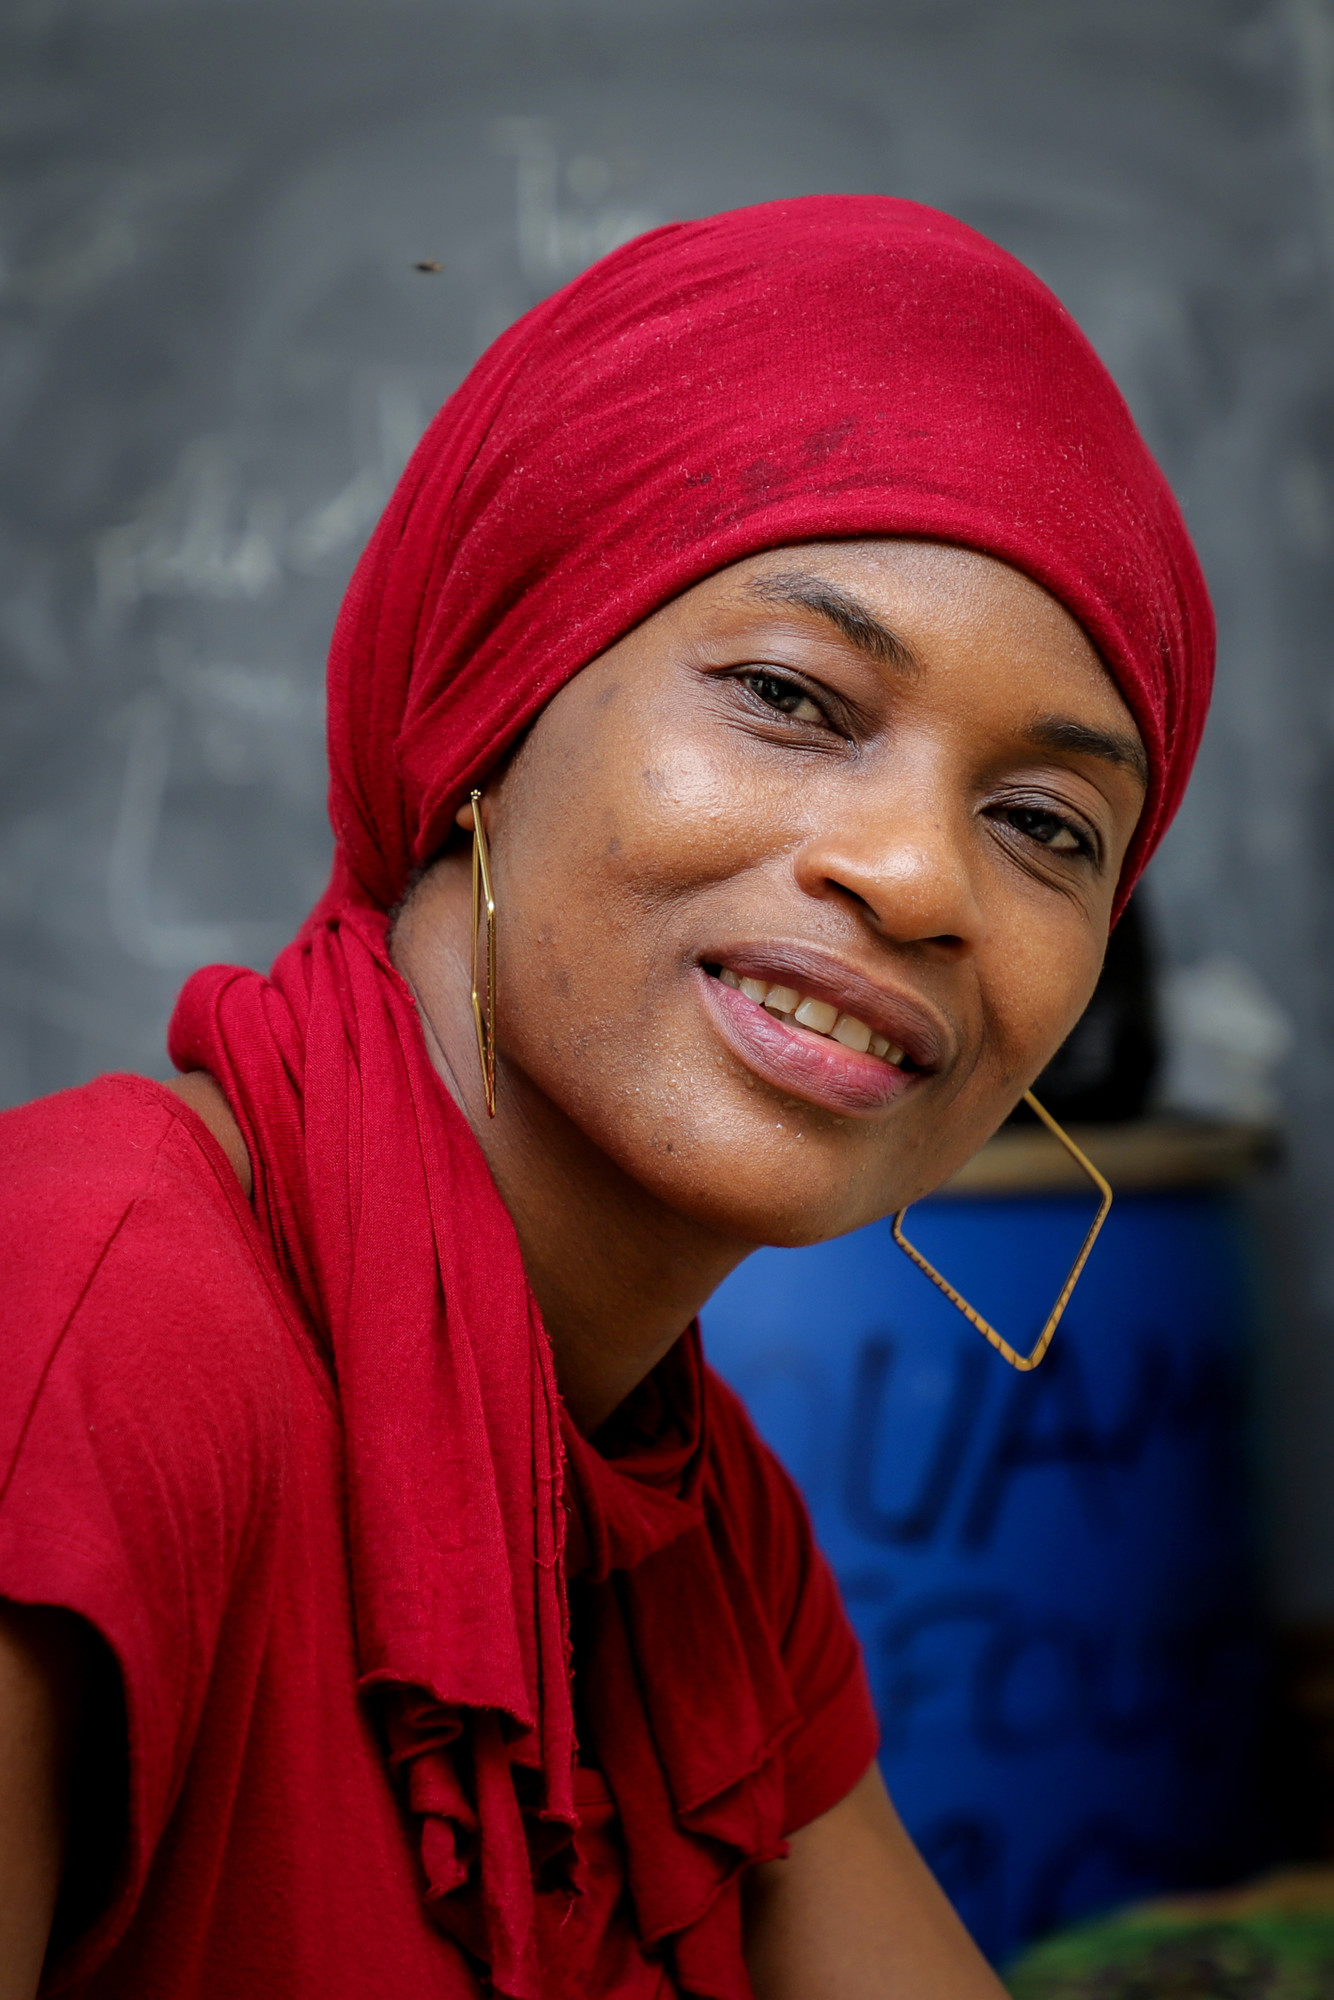 A woman in a red head wrap sits and smiles.